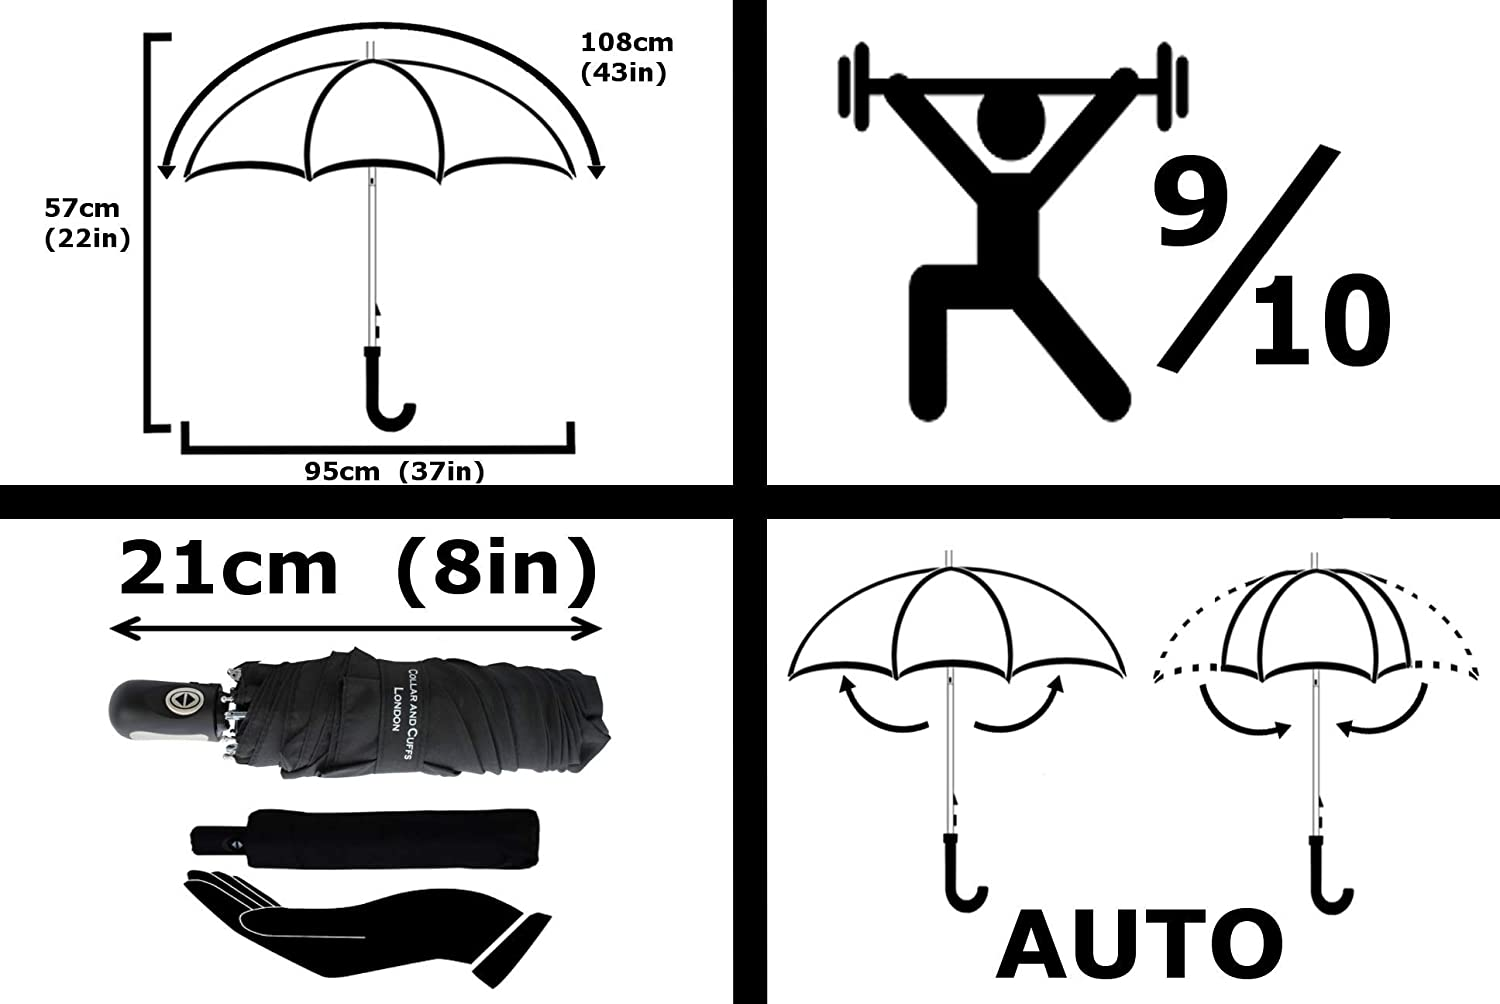 Small Compact Folding Umbrella Black CCLSTORMPUMB10265 Just 8in When Closed COLLAR AND CUFFS LONDON RARE MINI WINDPROOF UMBRELLA with AUTO OPEN AND CLOSE STRONG